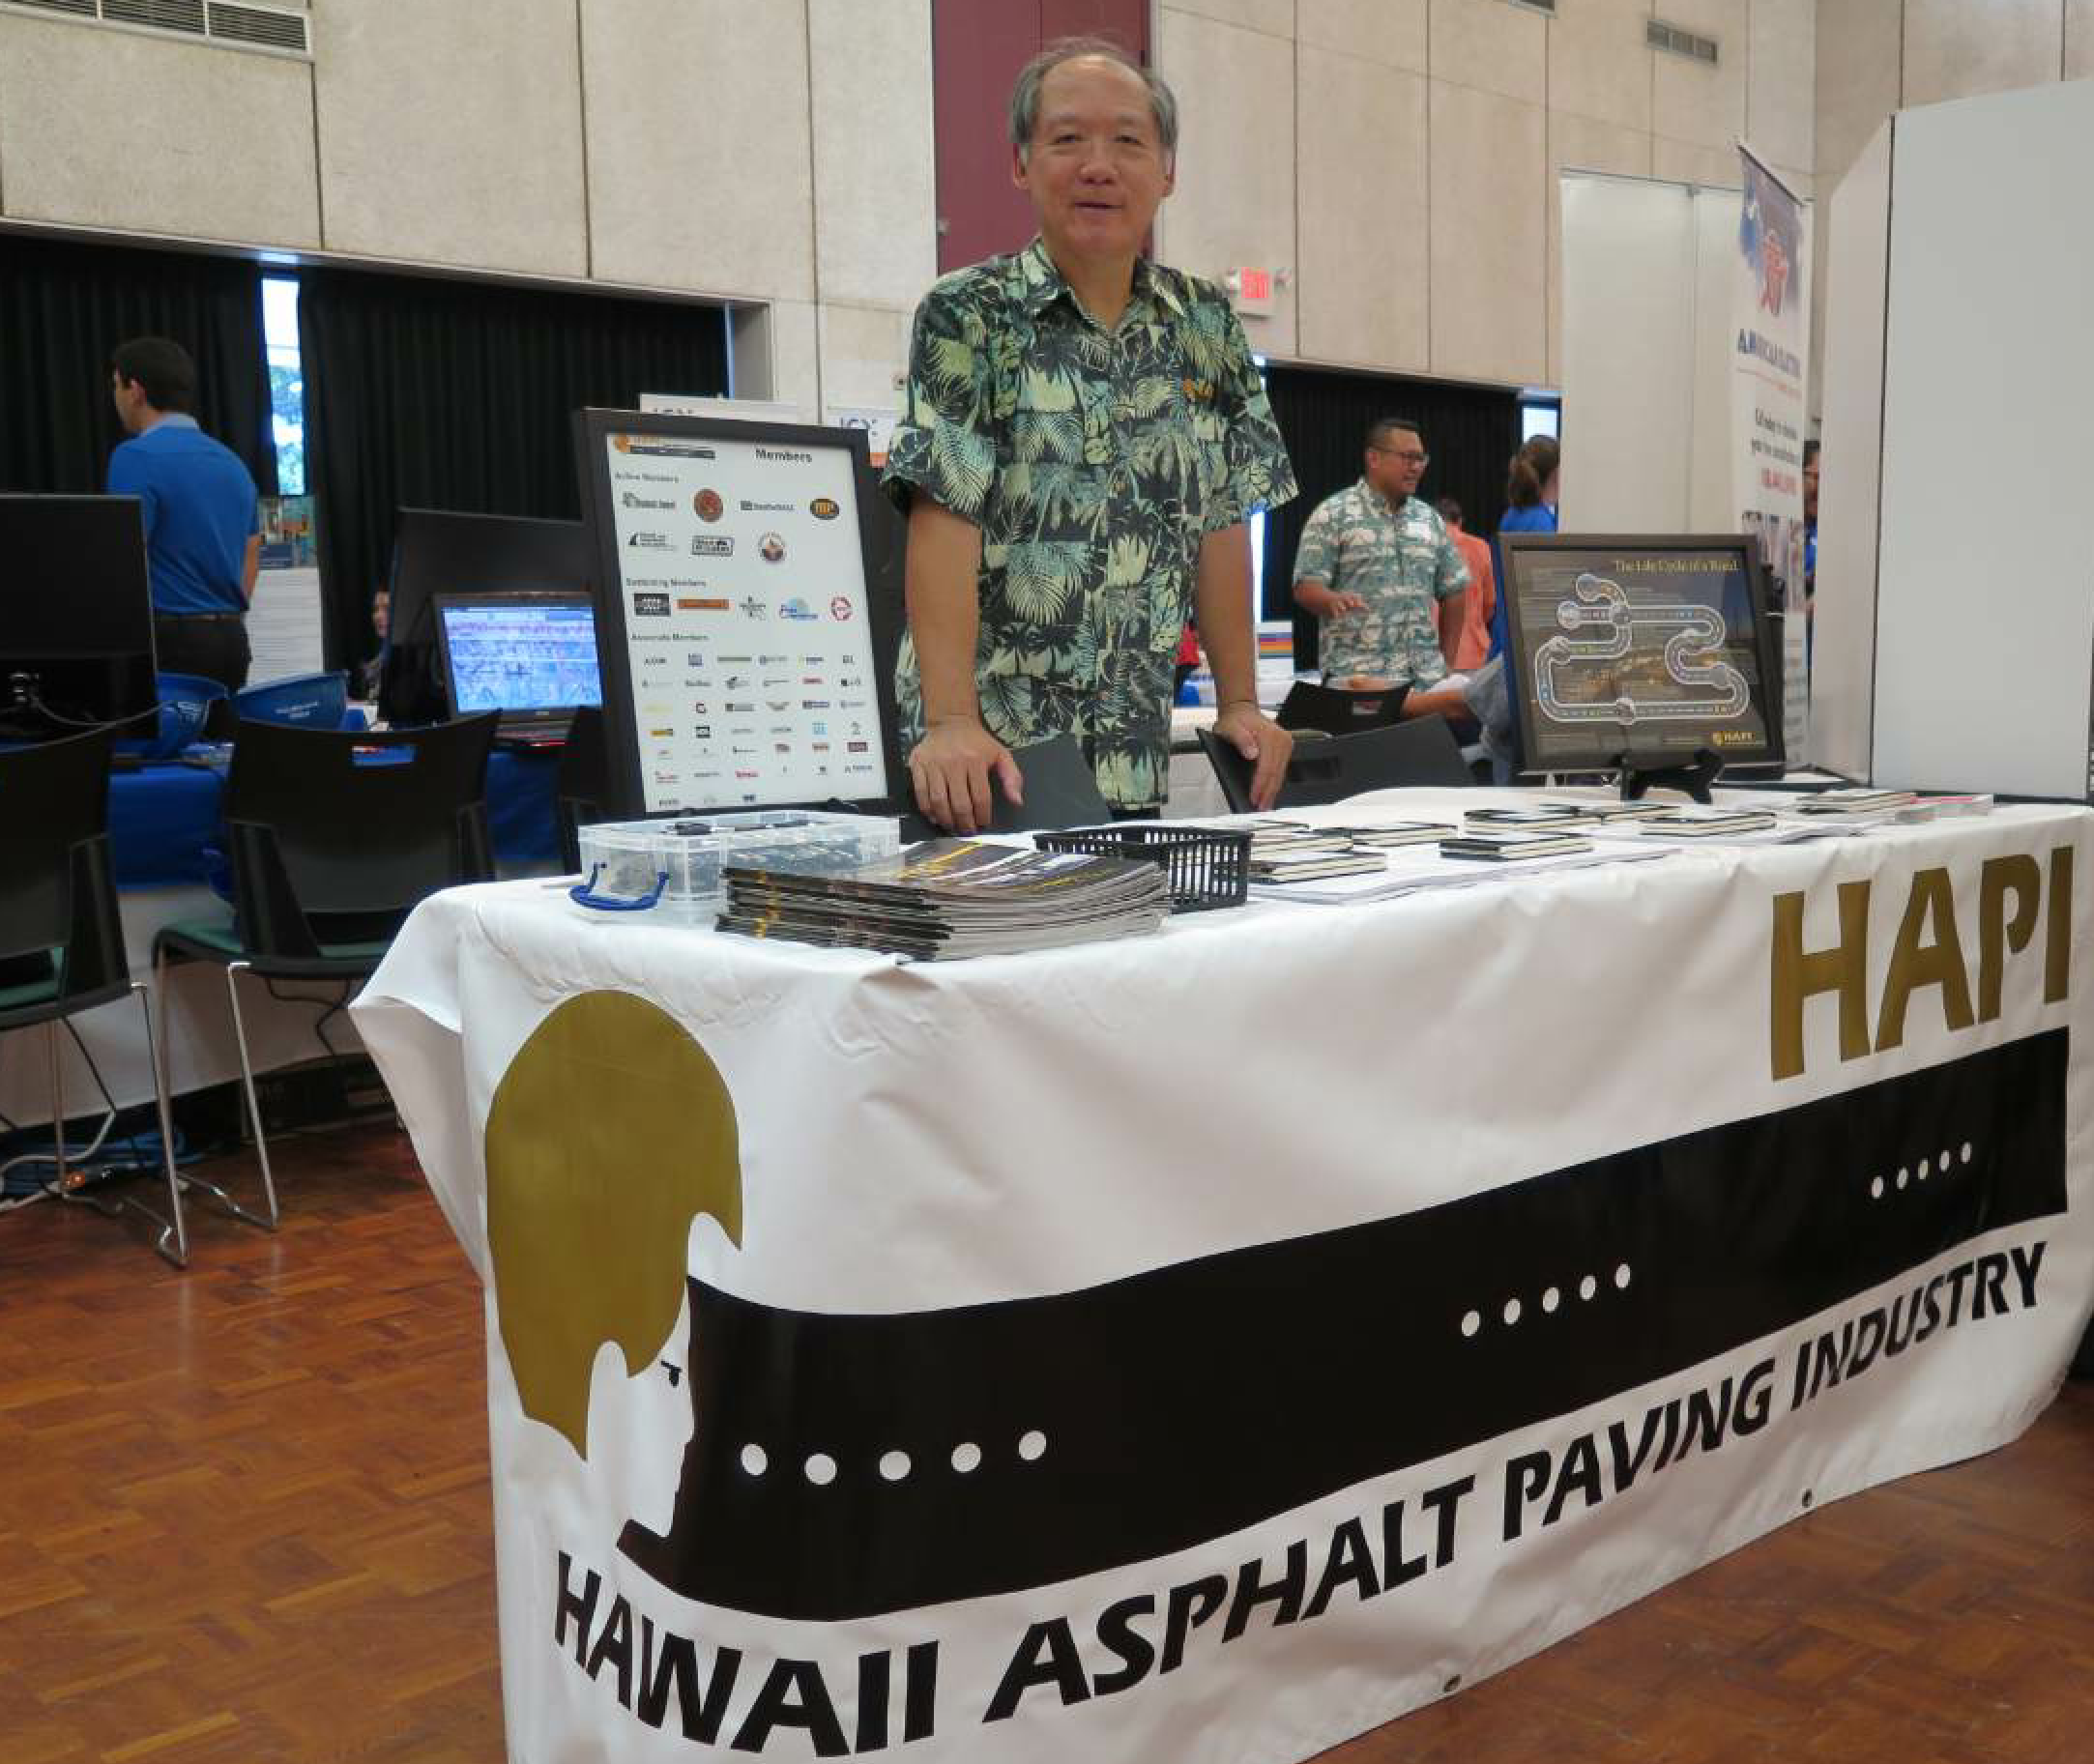 Jon Young is the executive director of the Hawaii Asphalt Pavement Industry (HAPI), and he encourages members of the organization to publicize jobs in the industry as a whole. Here he mans the HAPI table at a University of Hawaii College of Engineering Career Fair on campus Oct. 18, 2017.